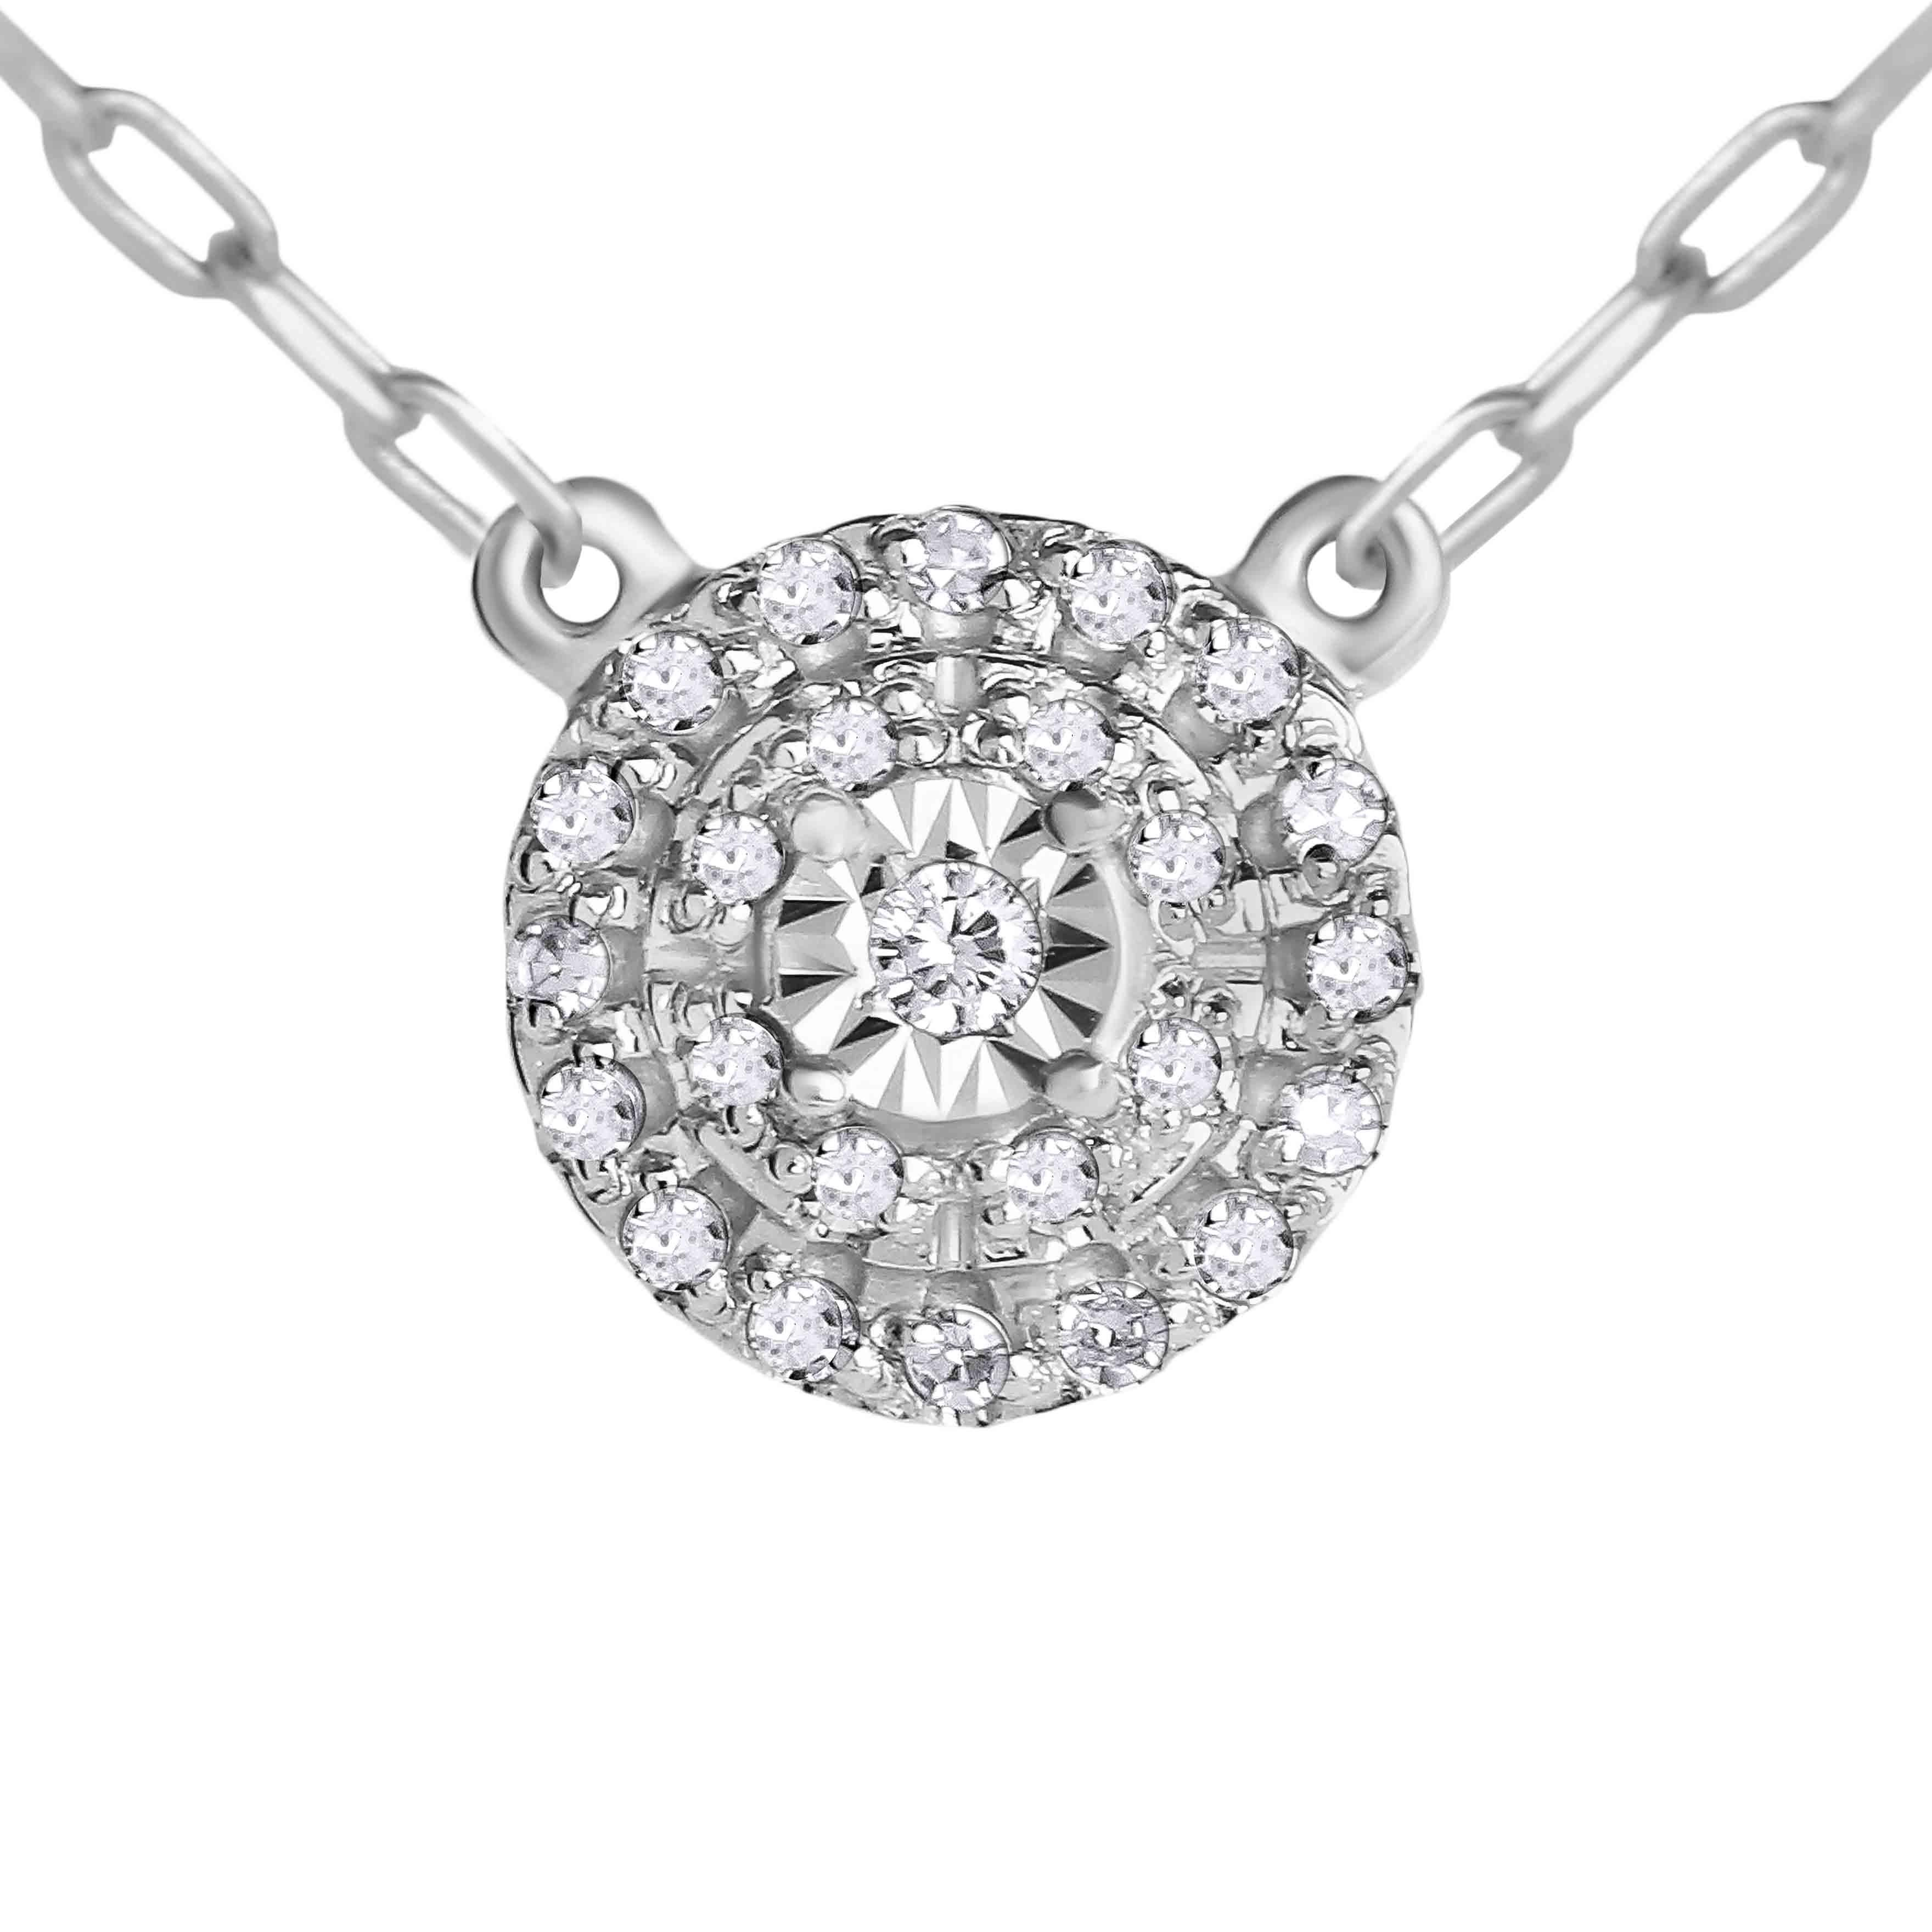 Illusion-set Diamond with Double Diamond Halo White Gold Necklace. View 2